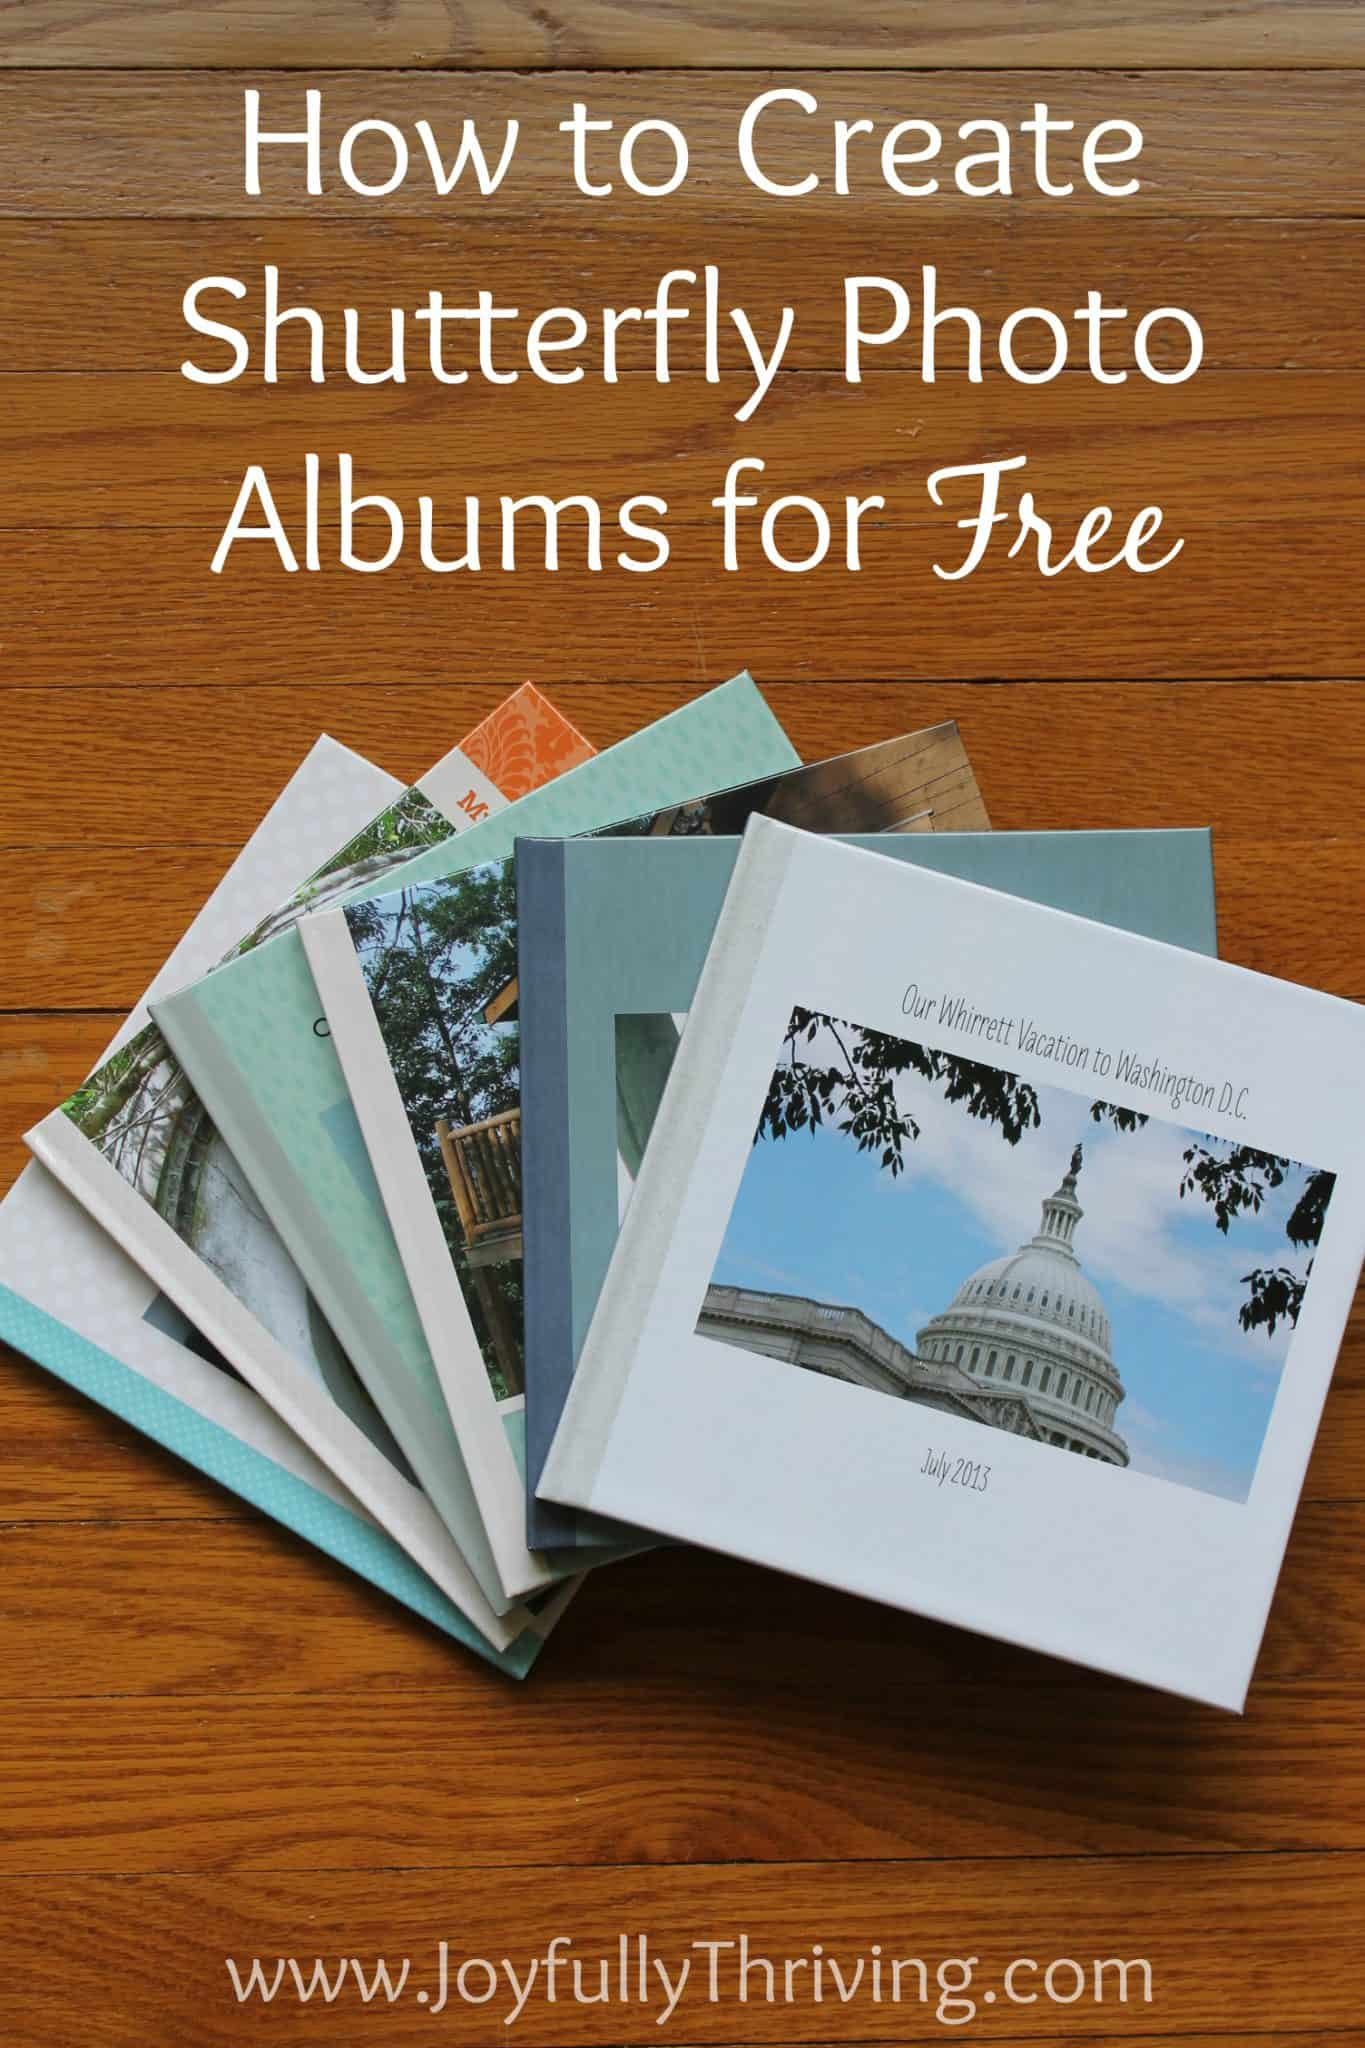 5 easy ways to create shutterfly photo albums for free